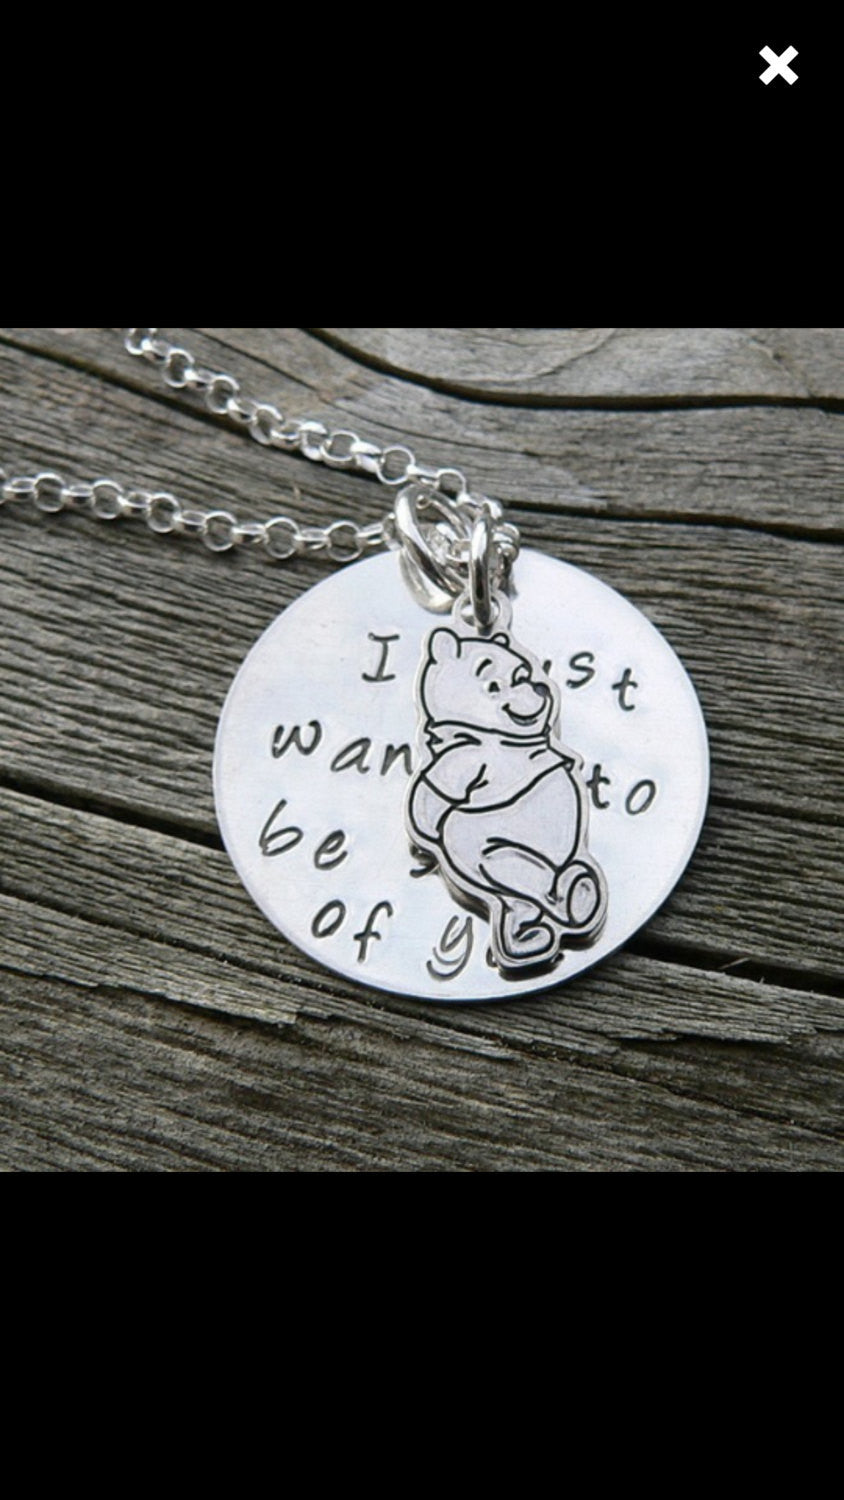 I Just Wanted to be Sure of You.  Pooh Necklace.